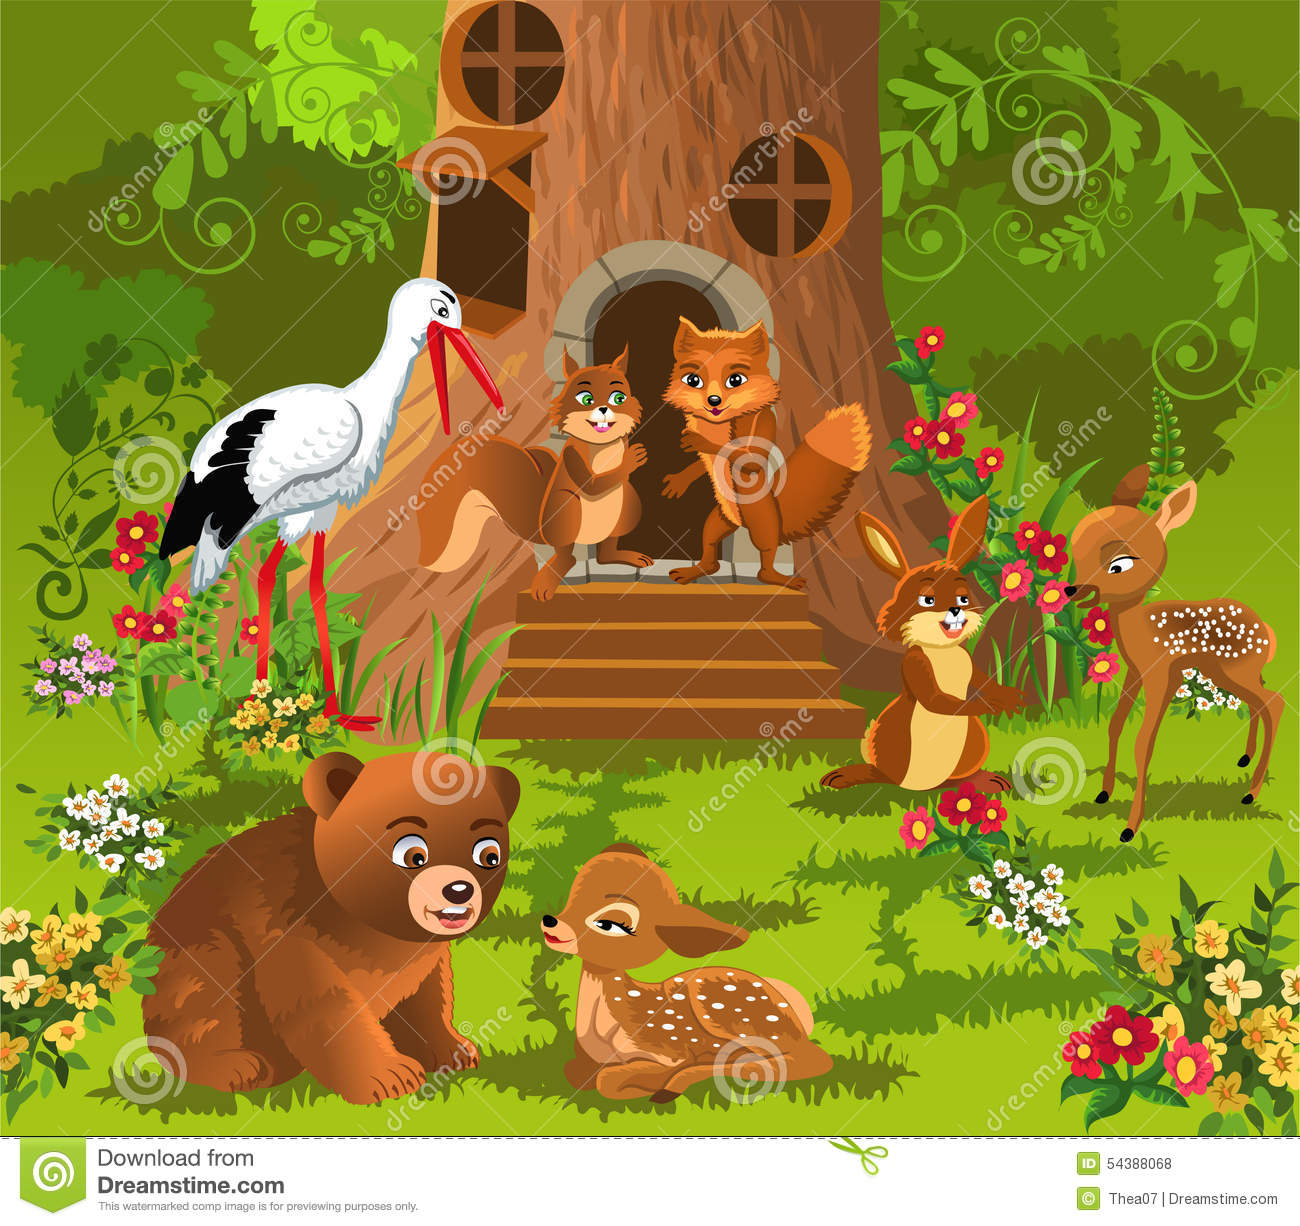 Forest Animals Living In The Tree House Stock Vector - Image: 54388068